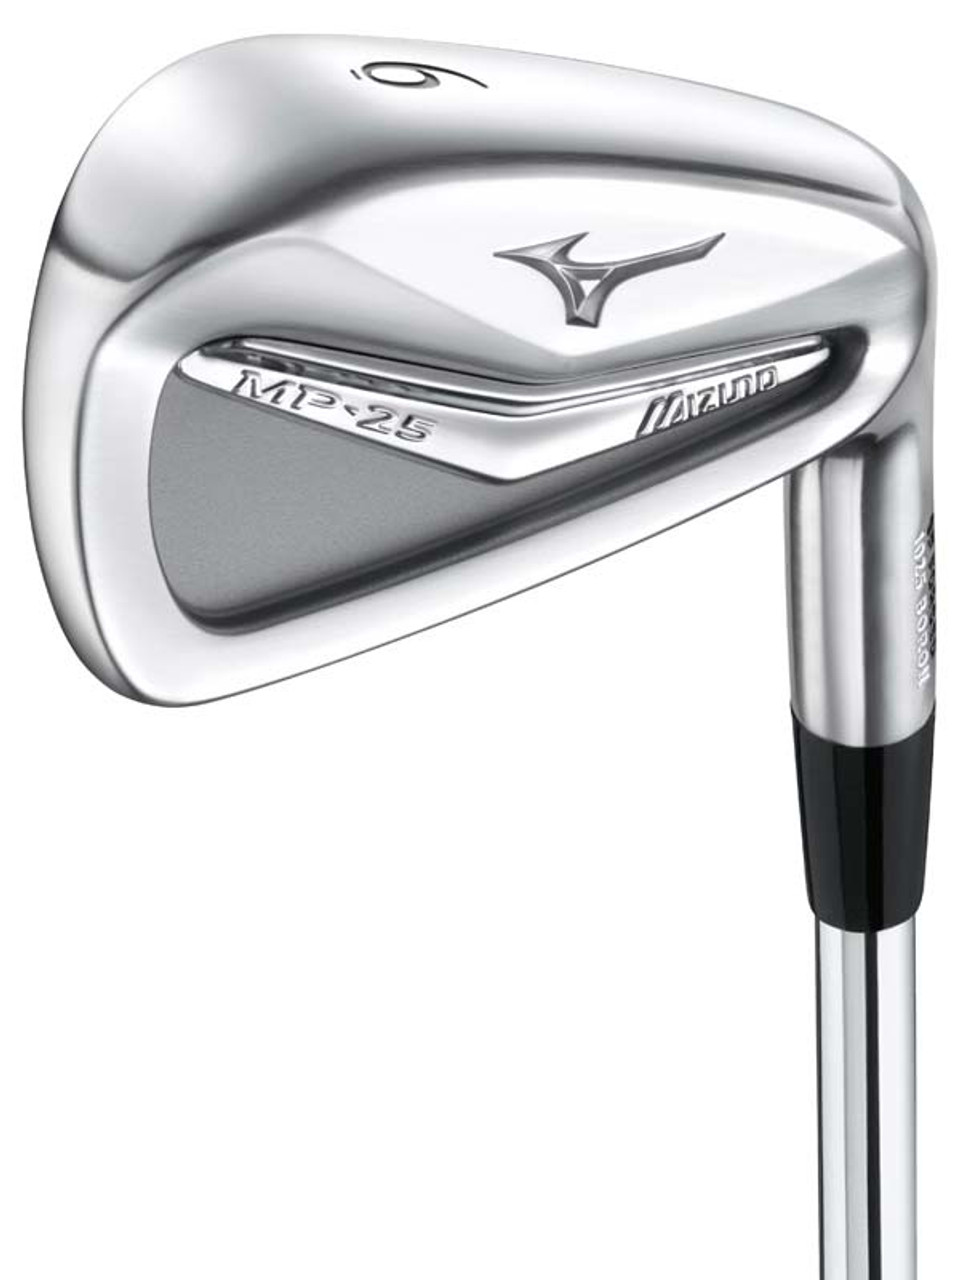 666b3e09e1f4 Mizuno MP-25 Irons Steel Shaft 3-PW For Sale | GolfBox